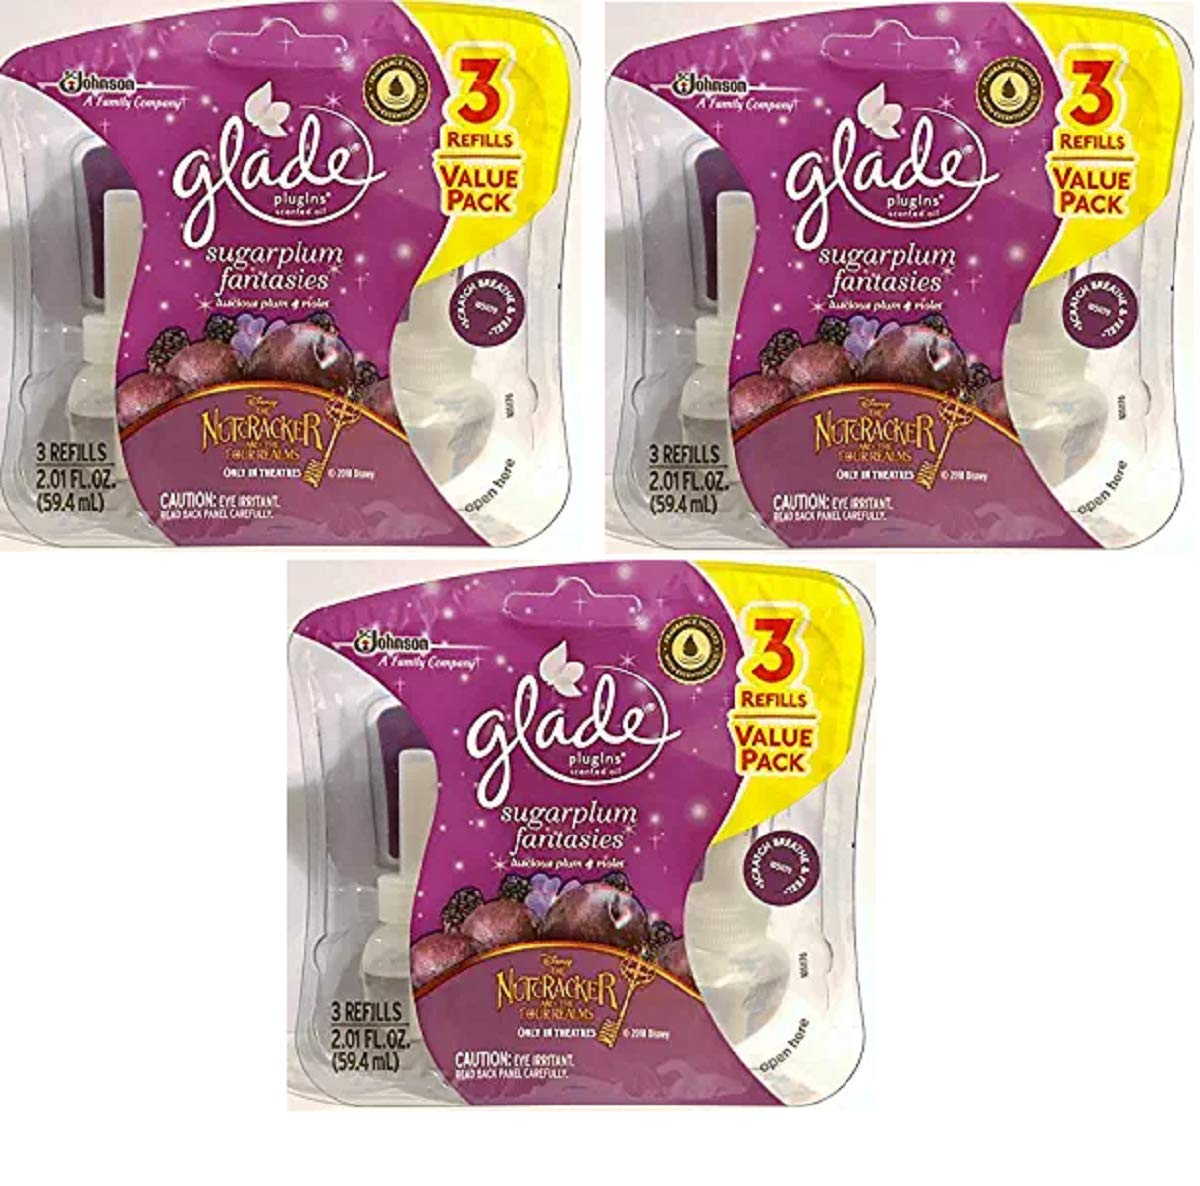 Glade Plugins Scented Oil Refills - Holiday Collection 2018 - Sugarplum Fantasies - 3 Count Oil Refills Per Package - 3 Packages - 9 Refills Total by Glade